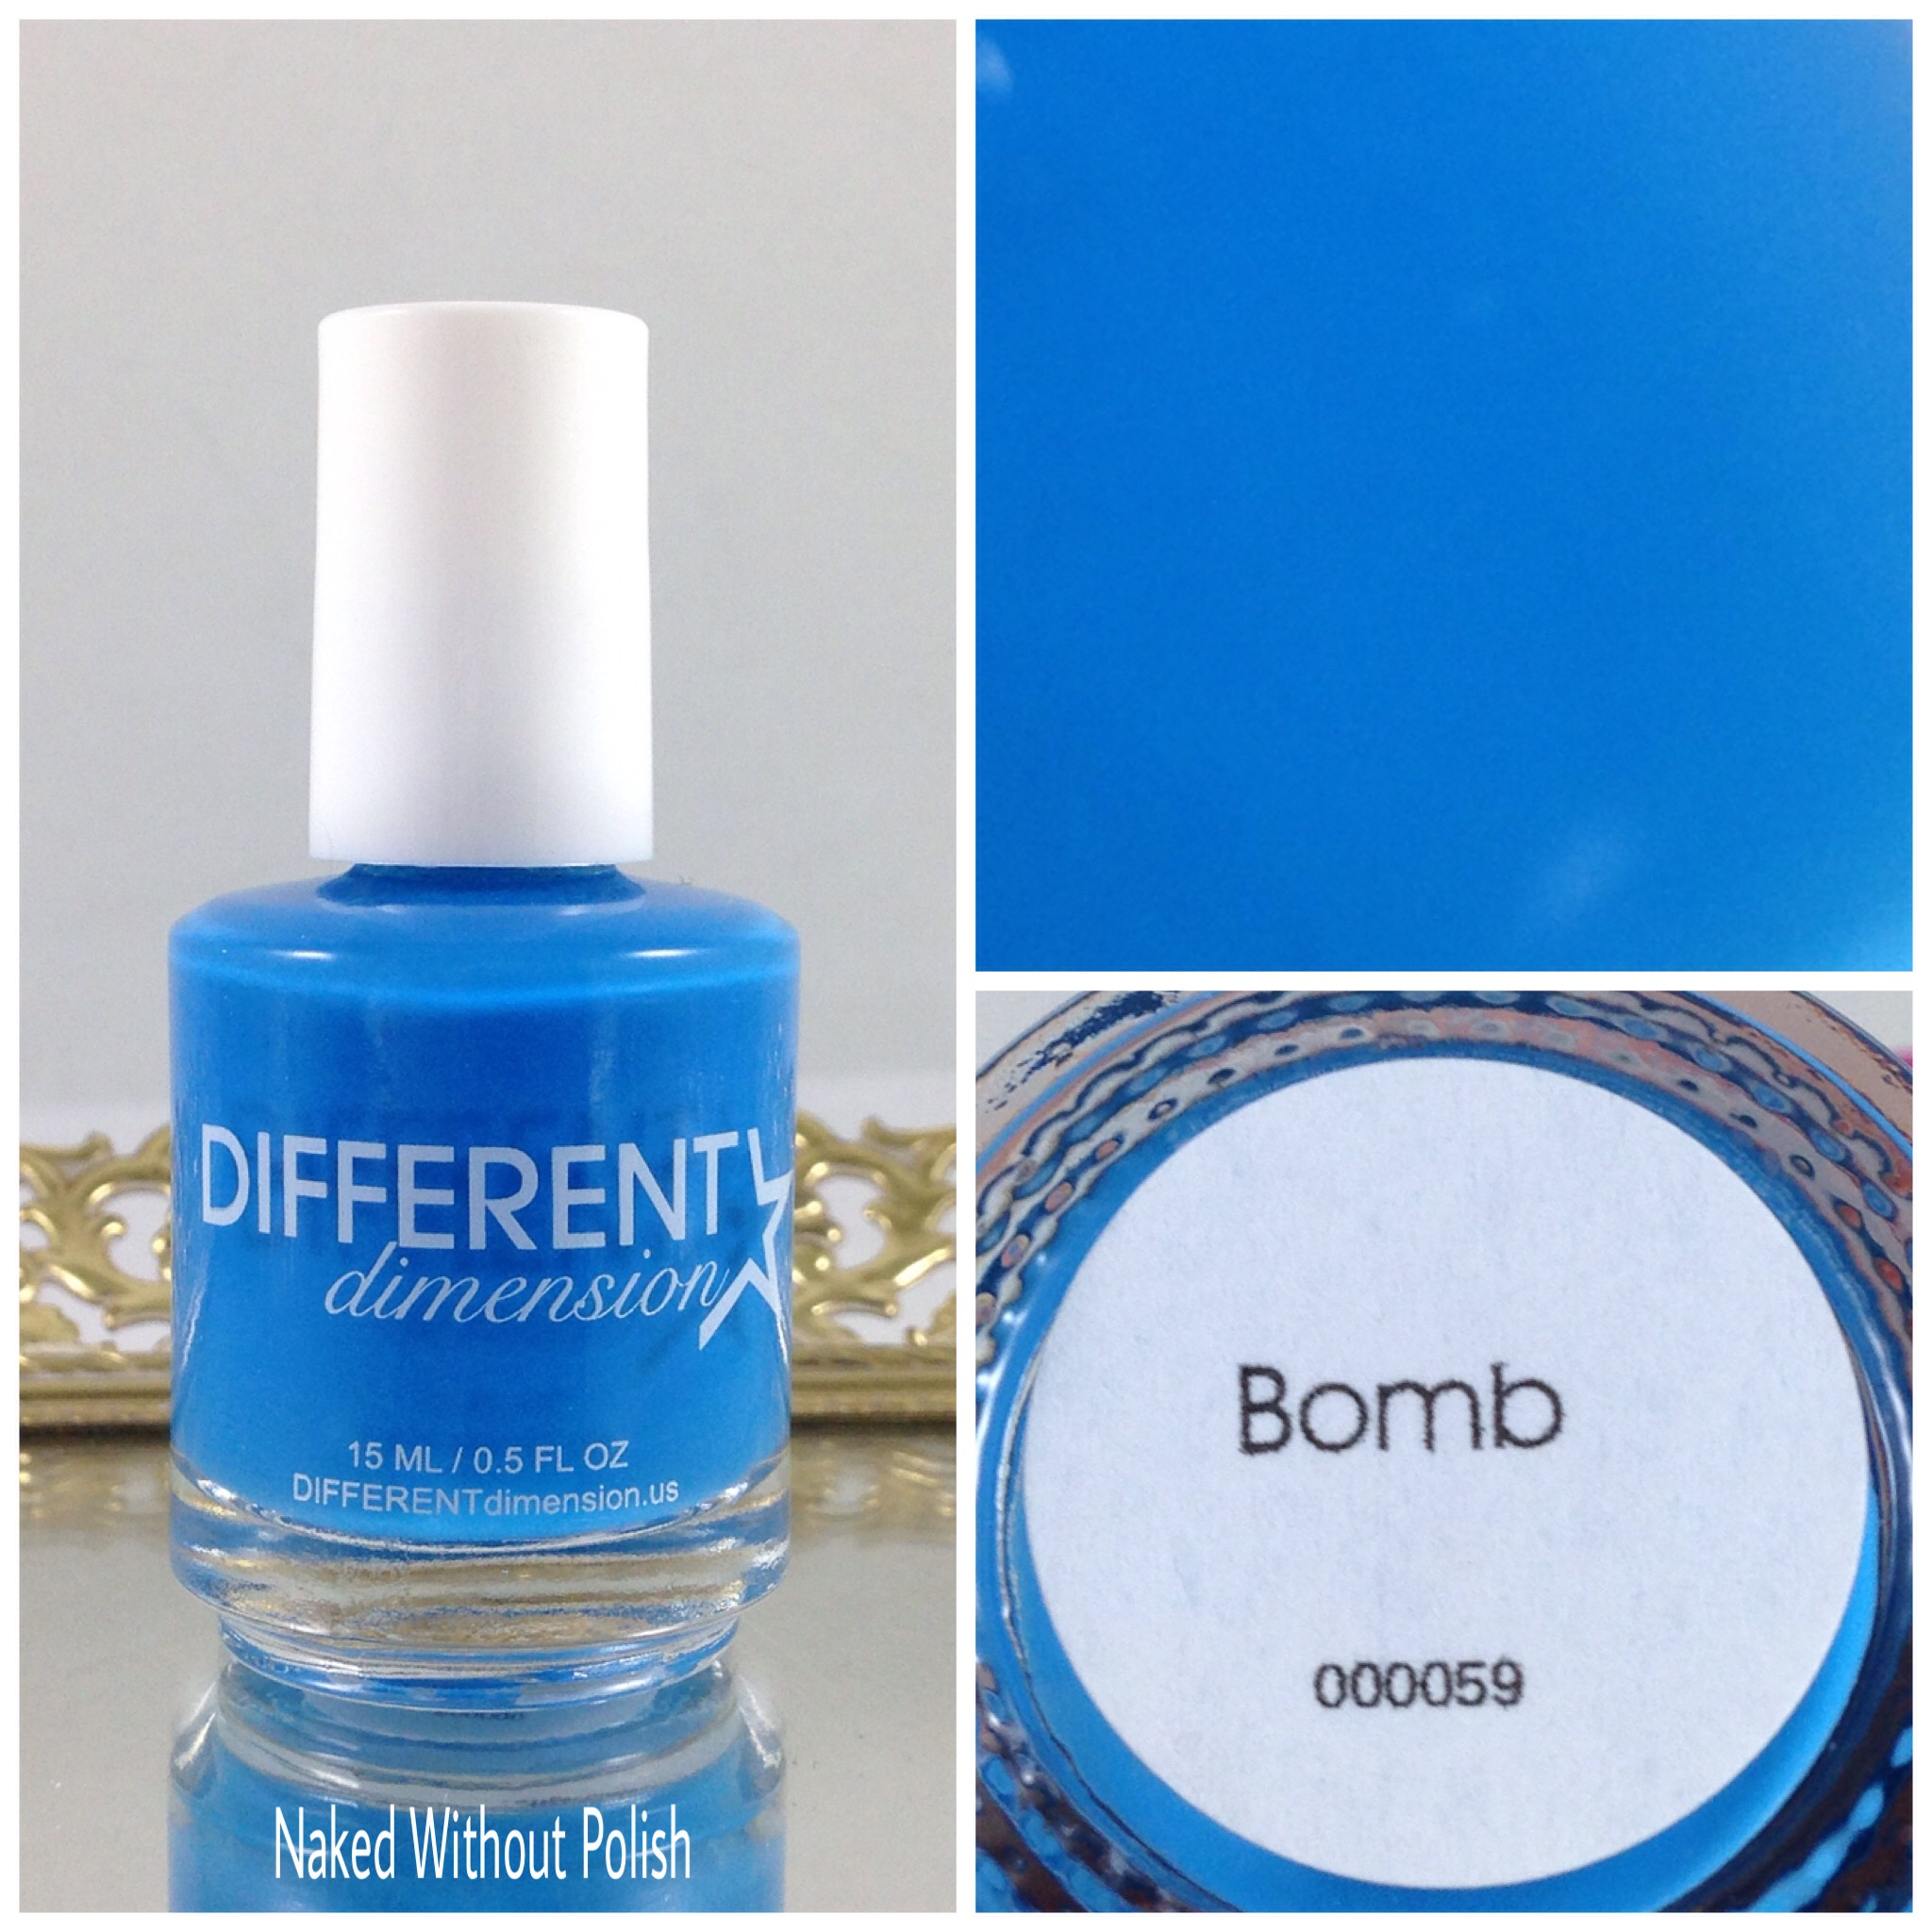 Different-Dimension-Bomb-1